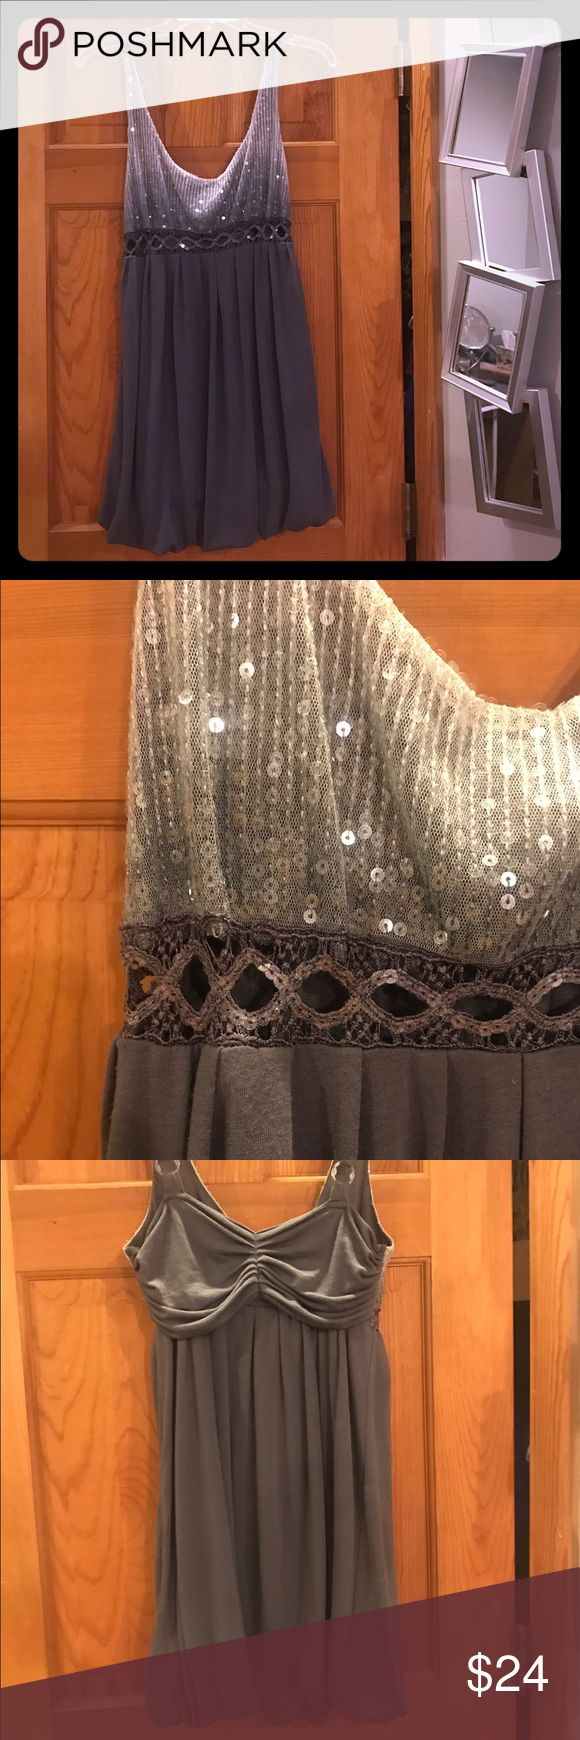 Sequenced Sparkly Dress Charcoal Grey Dress with a light grey to darker grey gradience with Sparkly sequence. Waist has an open belt like design, in the front that shows skin. Mid-thigh length (on me) Cute for New Years Eve! American Rag Dresses Midi